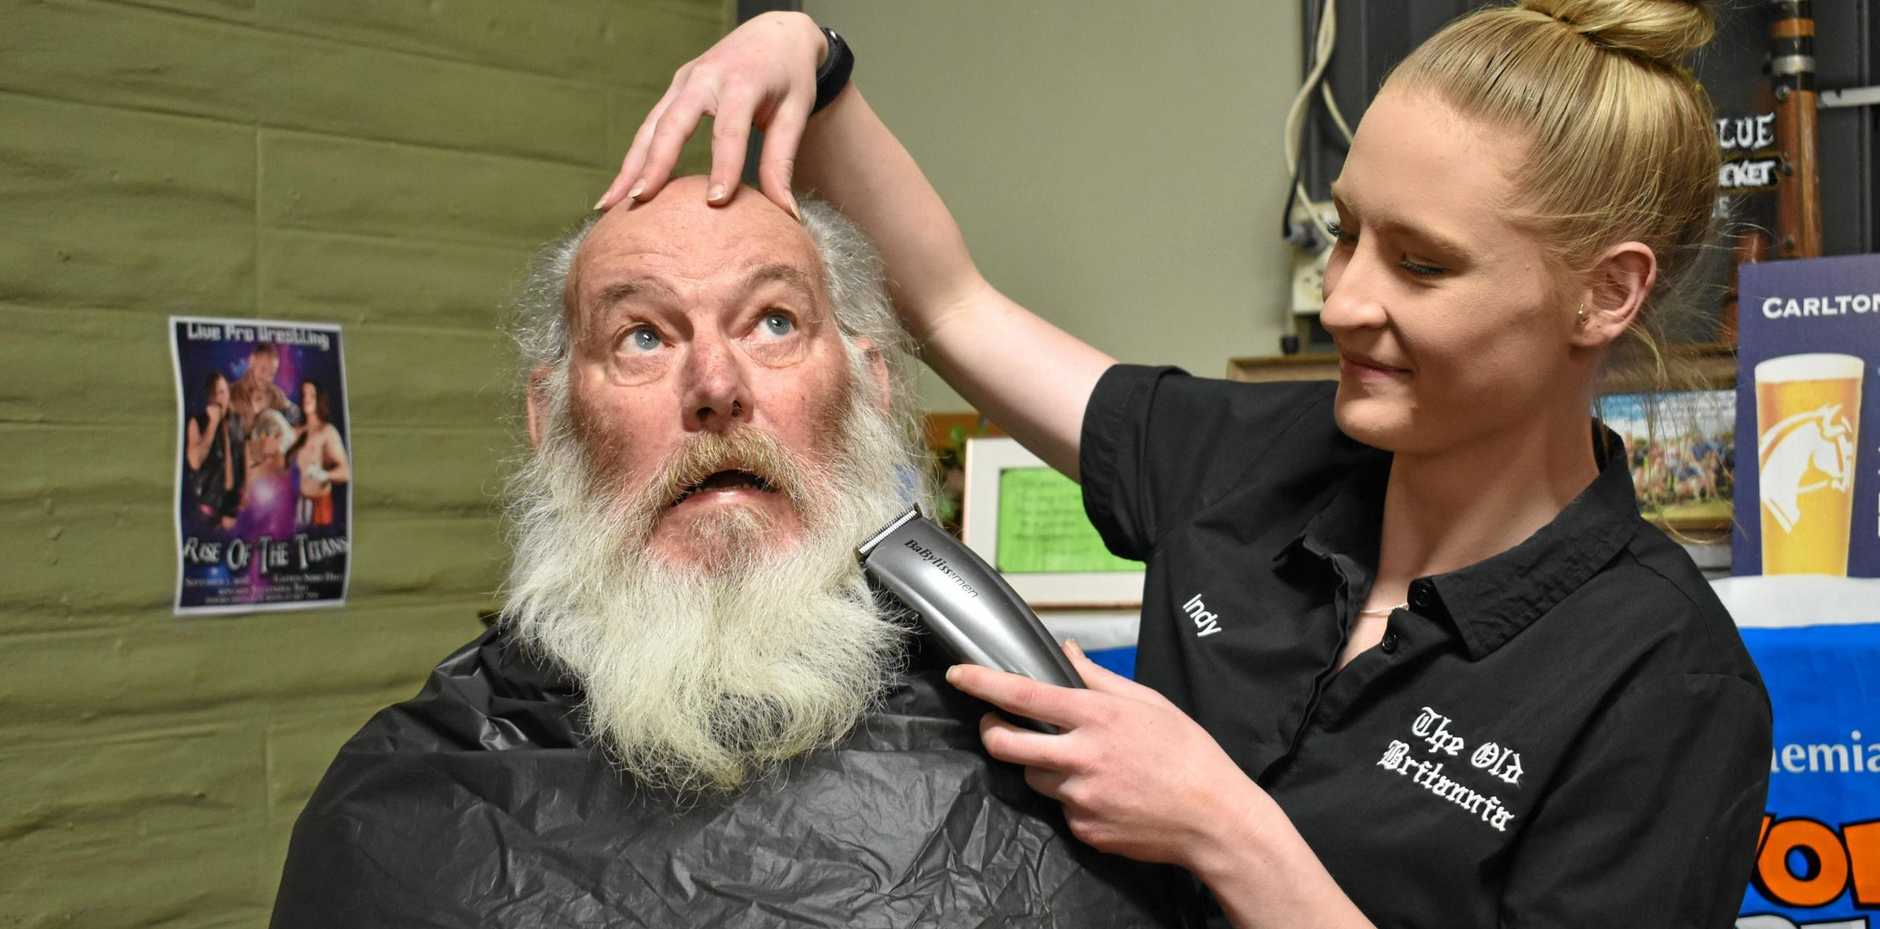 OFF IT GOES: Tom Byrne prepares to face the World's Greatest Shave with Indy Littlemore.